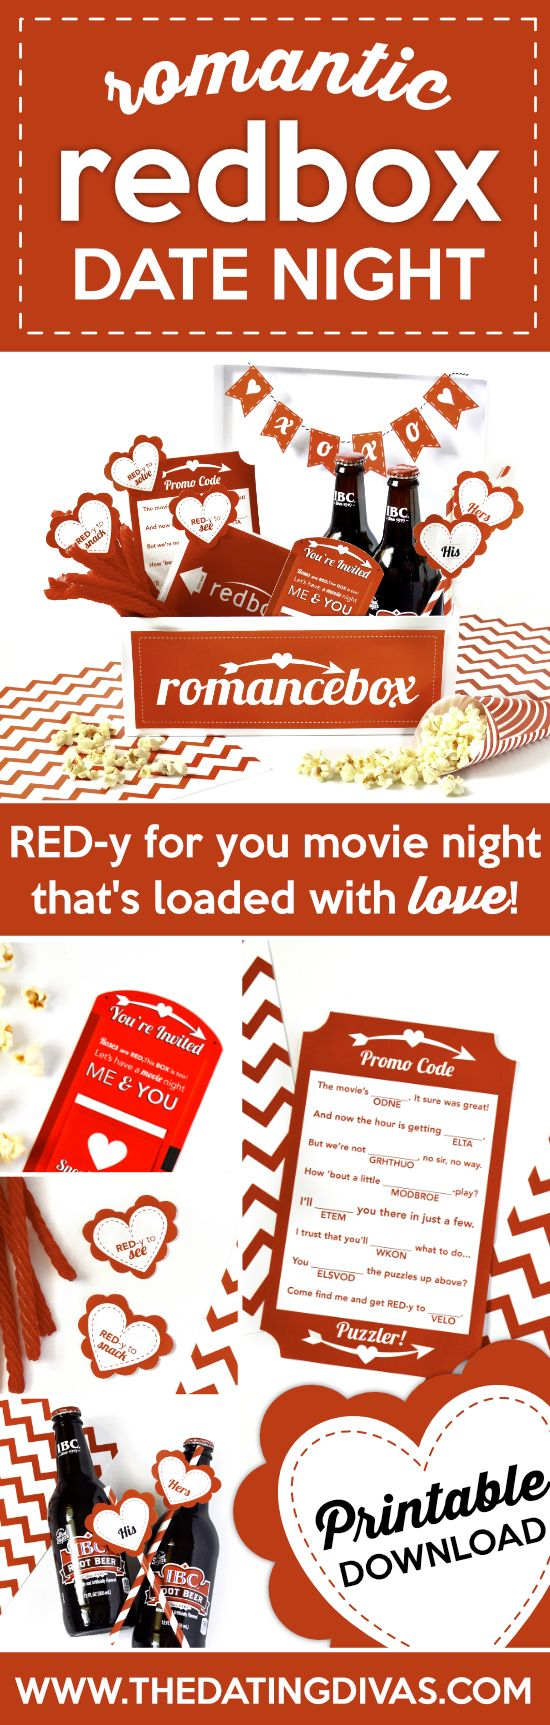 I can't wait to do this for movie/date night! So easy and cute!!